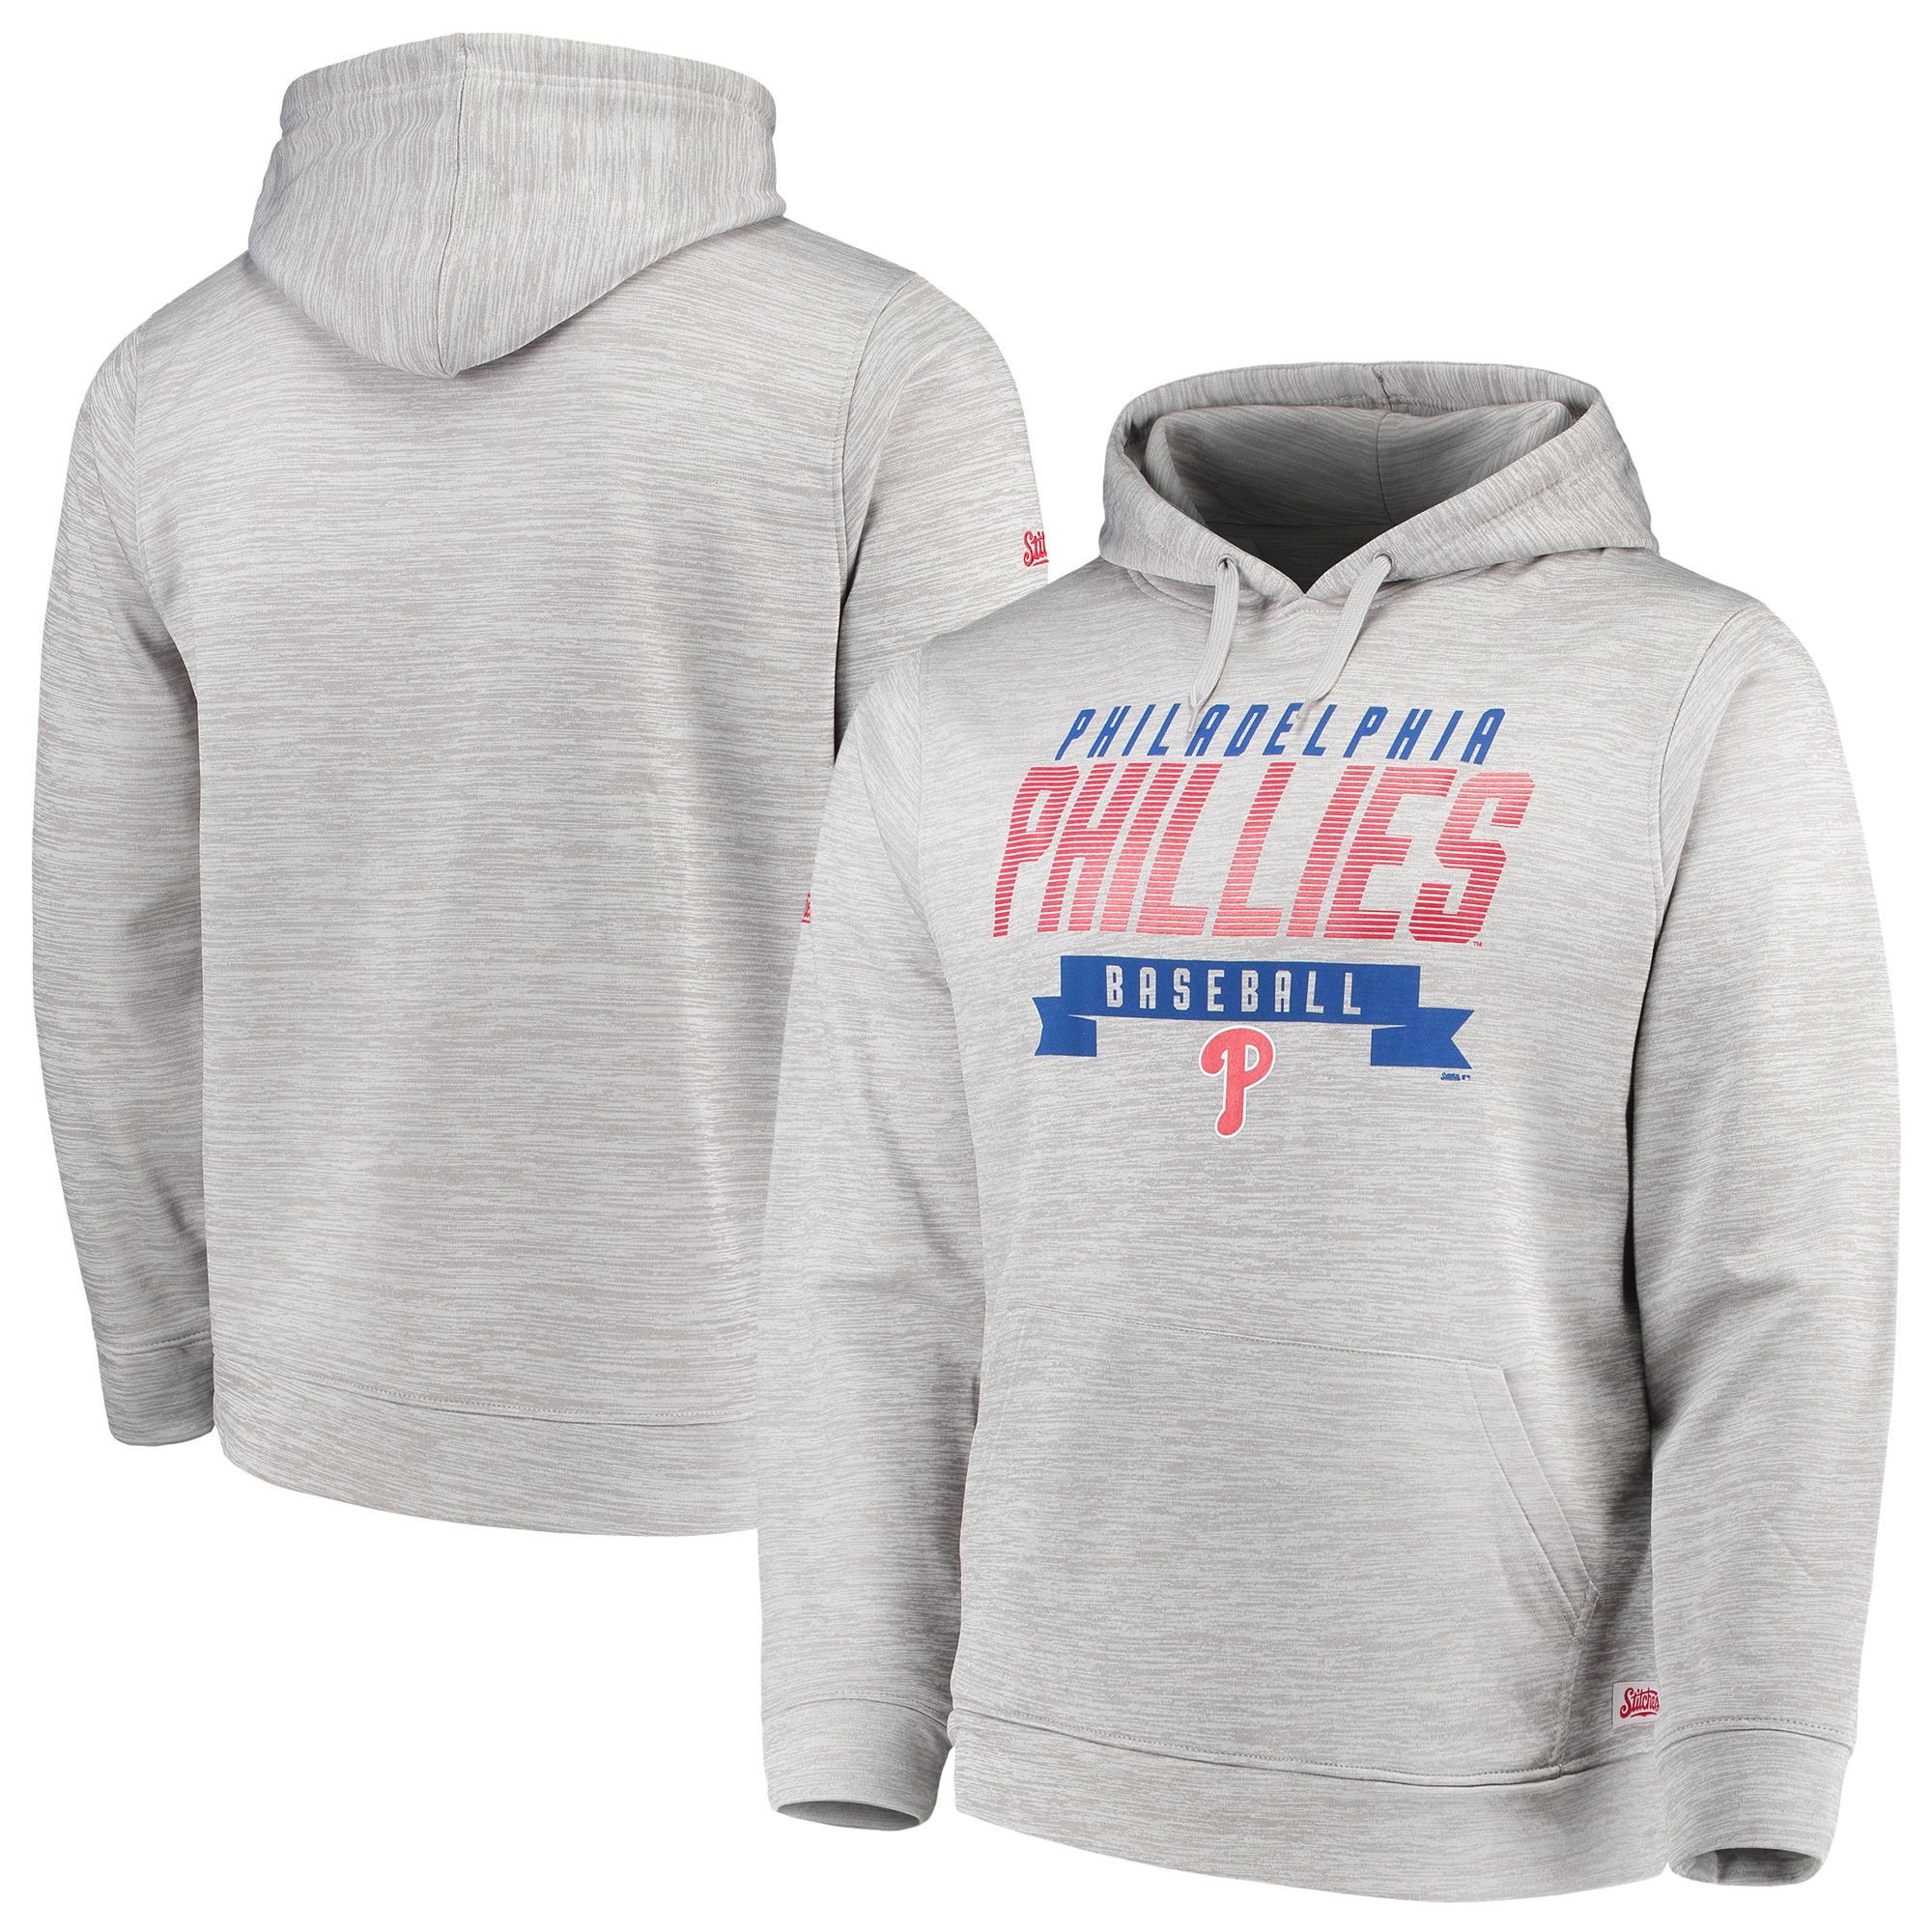 Philadelphia Phillies Stitches Poly Pullover Hoodie - Heathered Gray